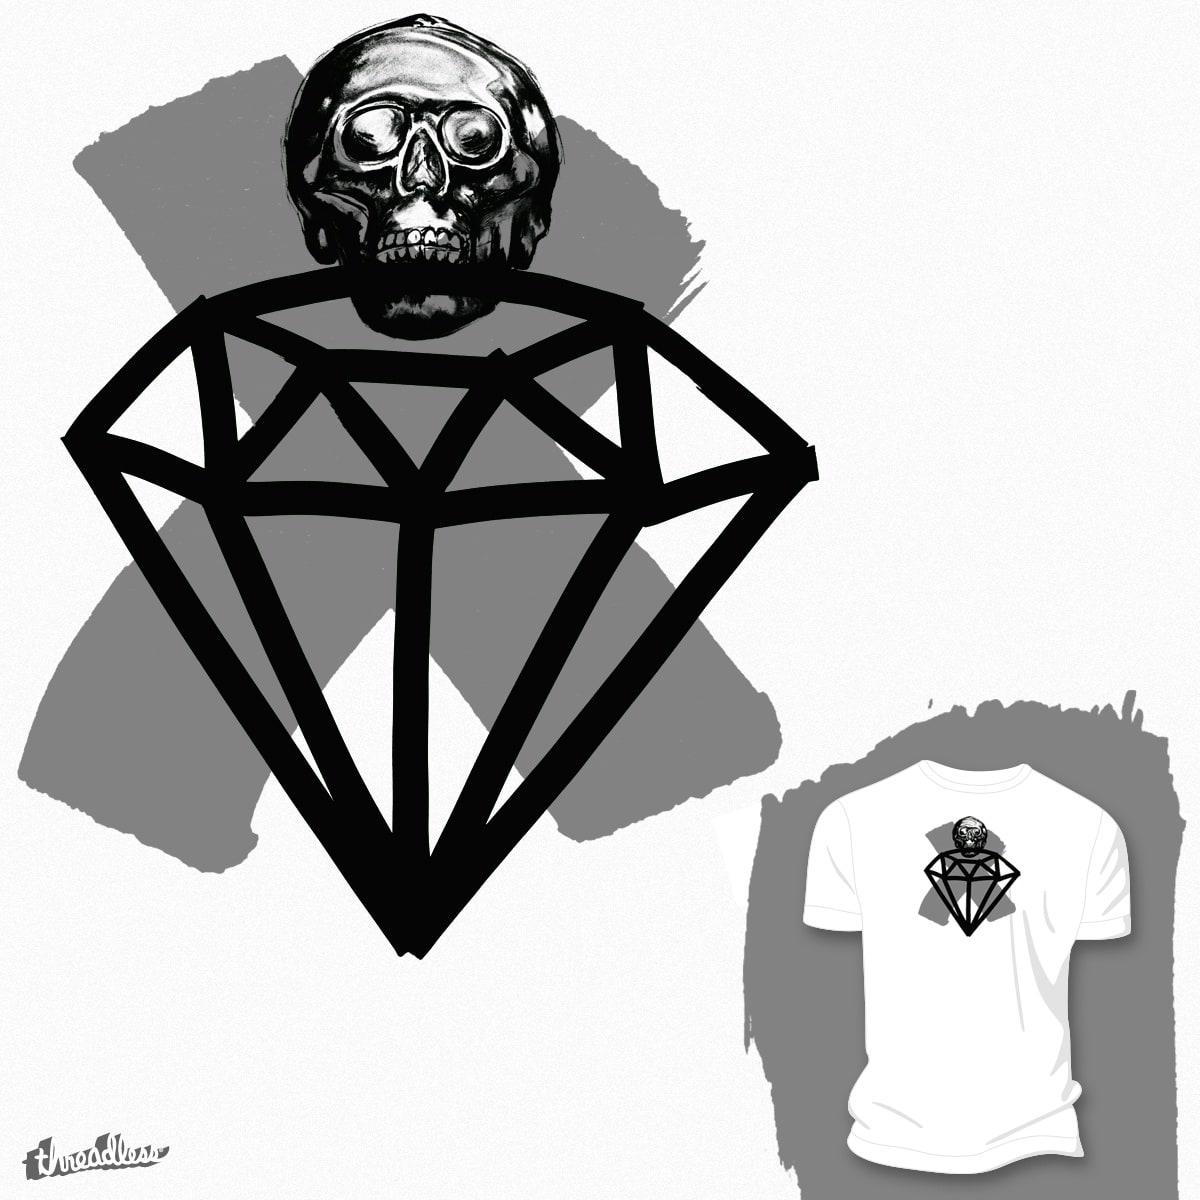 Rough Diamond by Airborne360 on Threadless